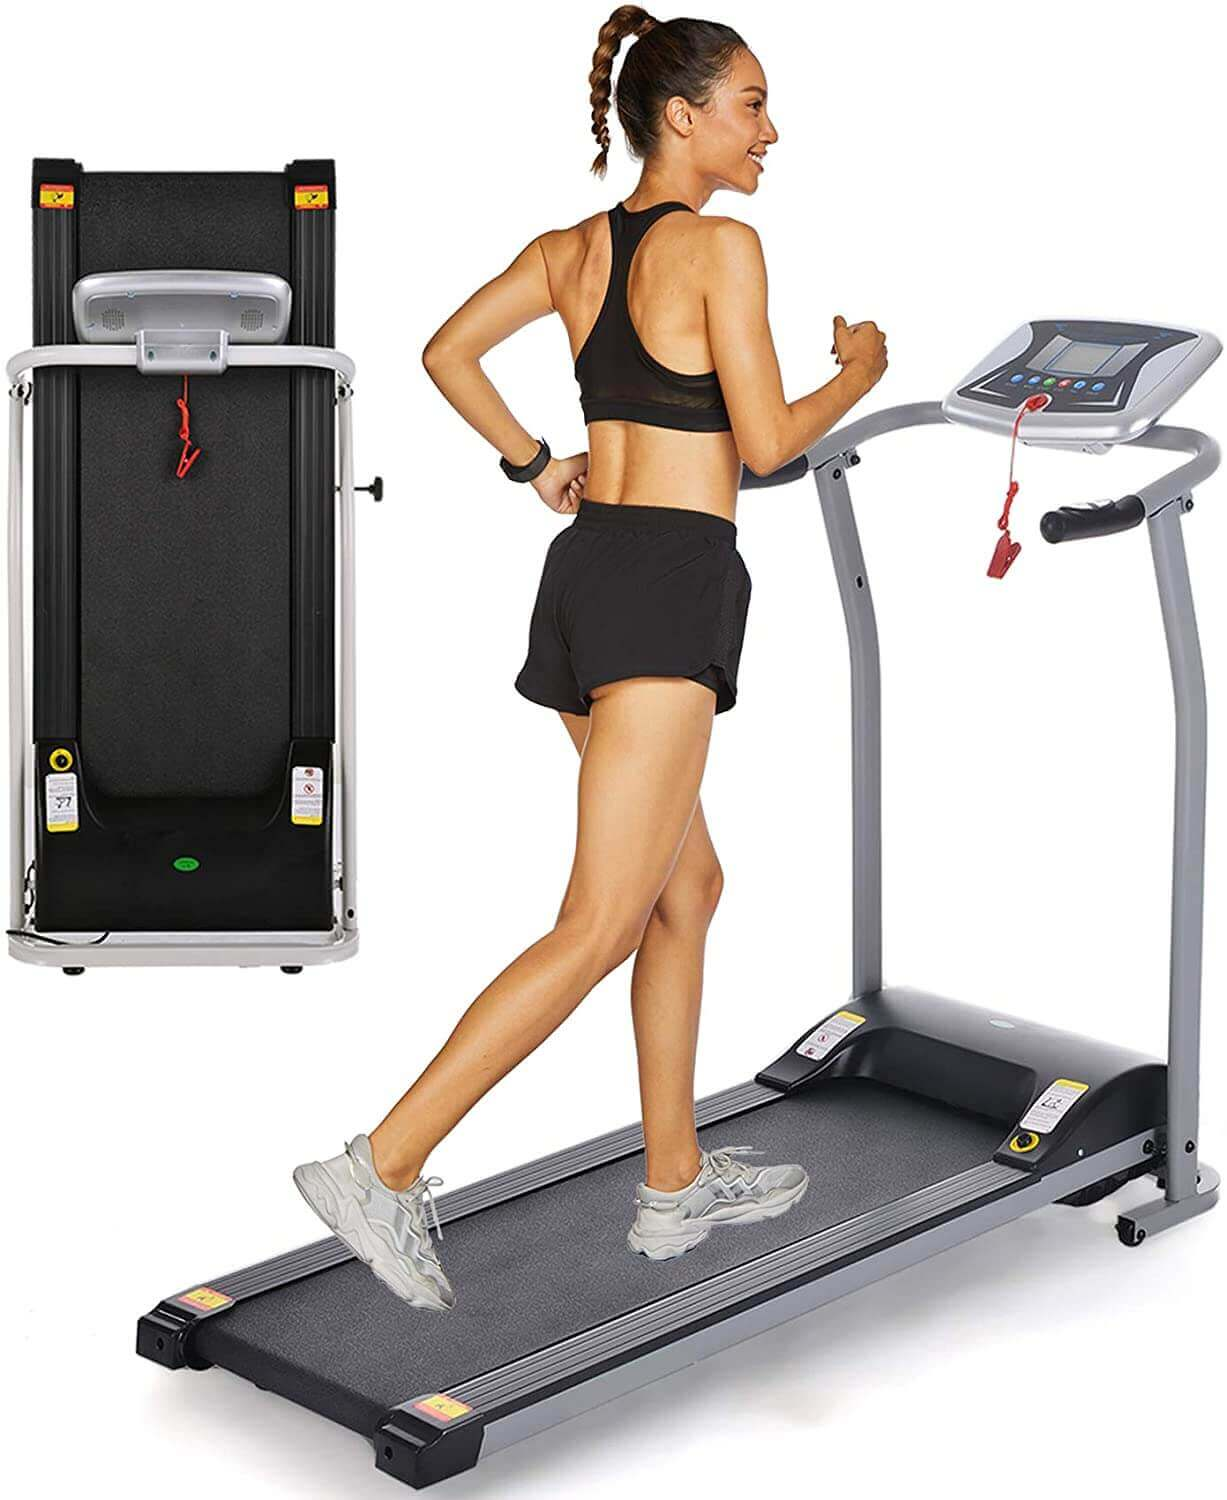 OppsDecor Folding, Motorized, Electric Treadmill Exercise Machine  - for Home